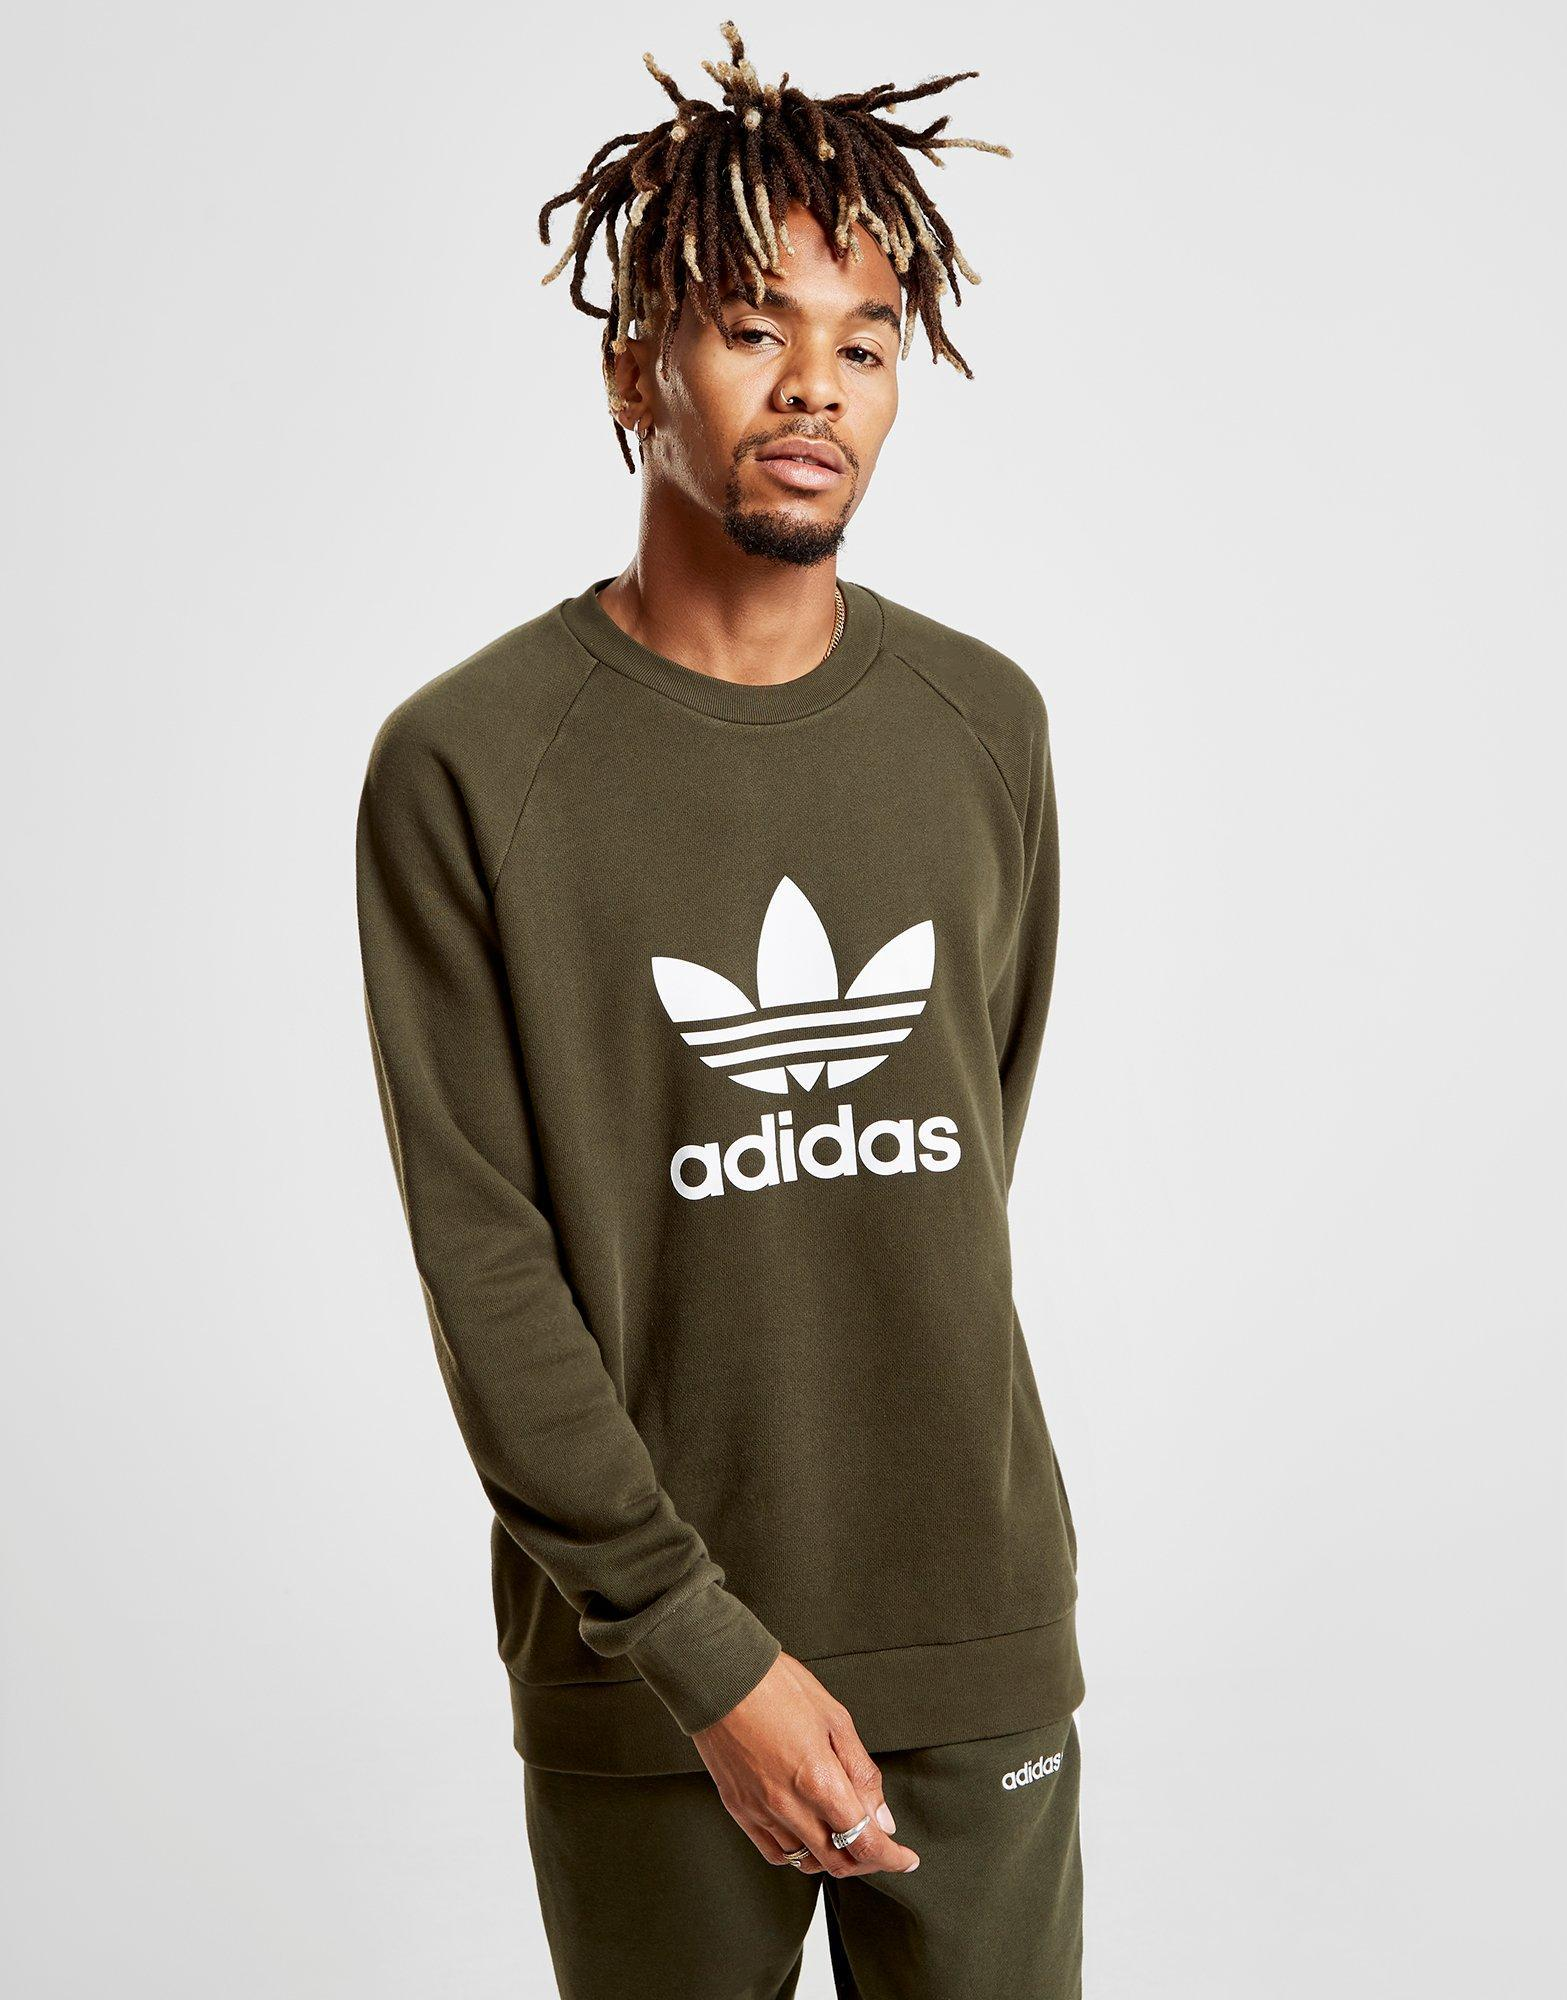 7839bfd65050 Lyst - Adidas Originals Trefoil Crew Sweatshirt in Natural for Men